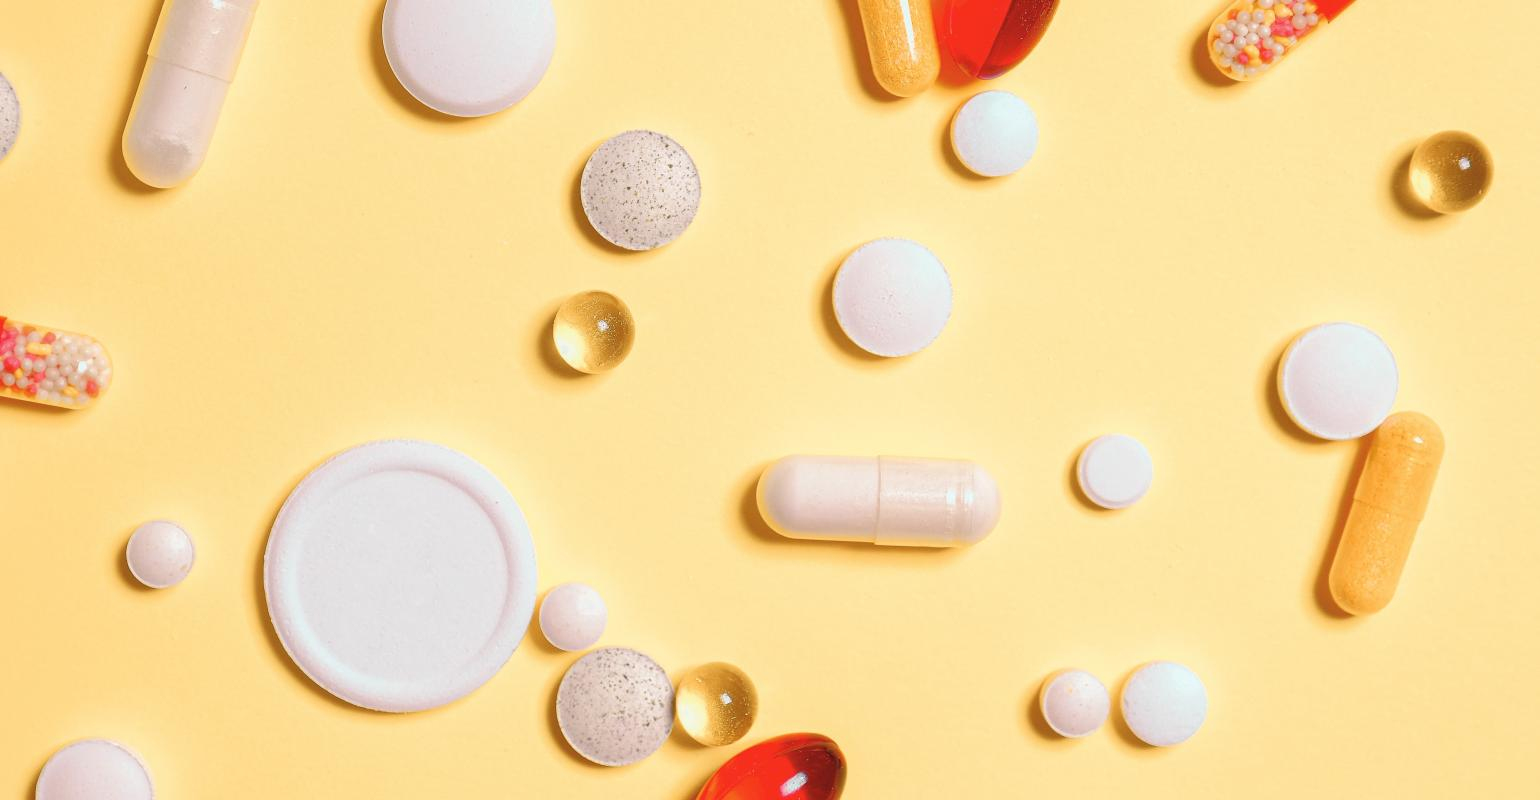 Considerations For Taking Personalised Supplement & Vitamins